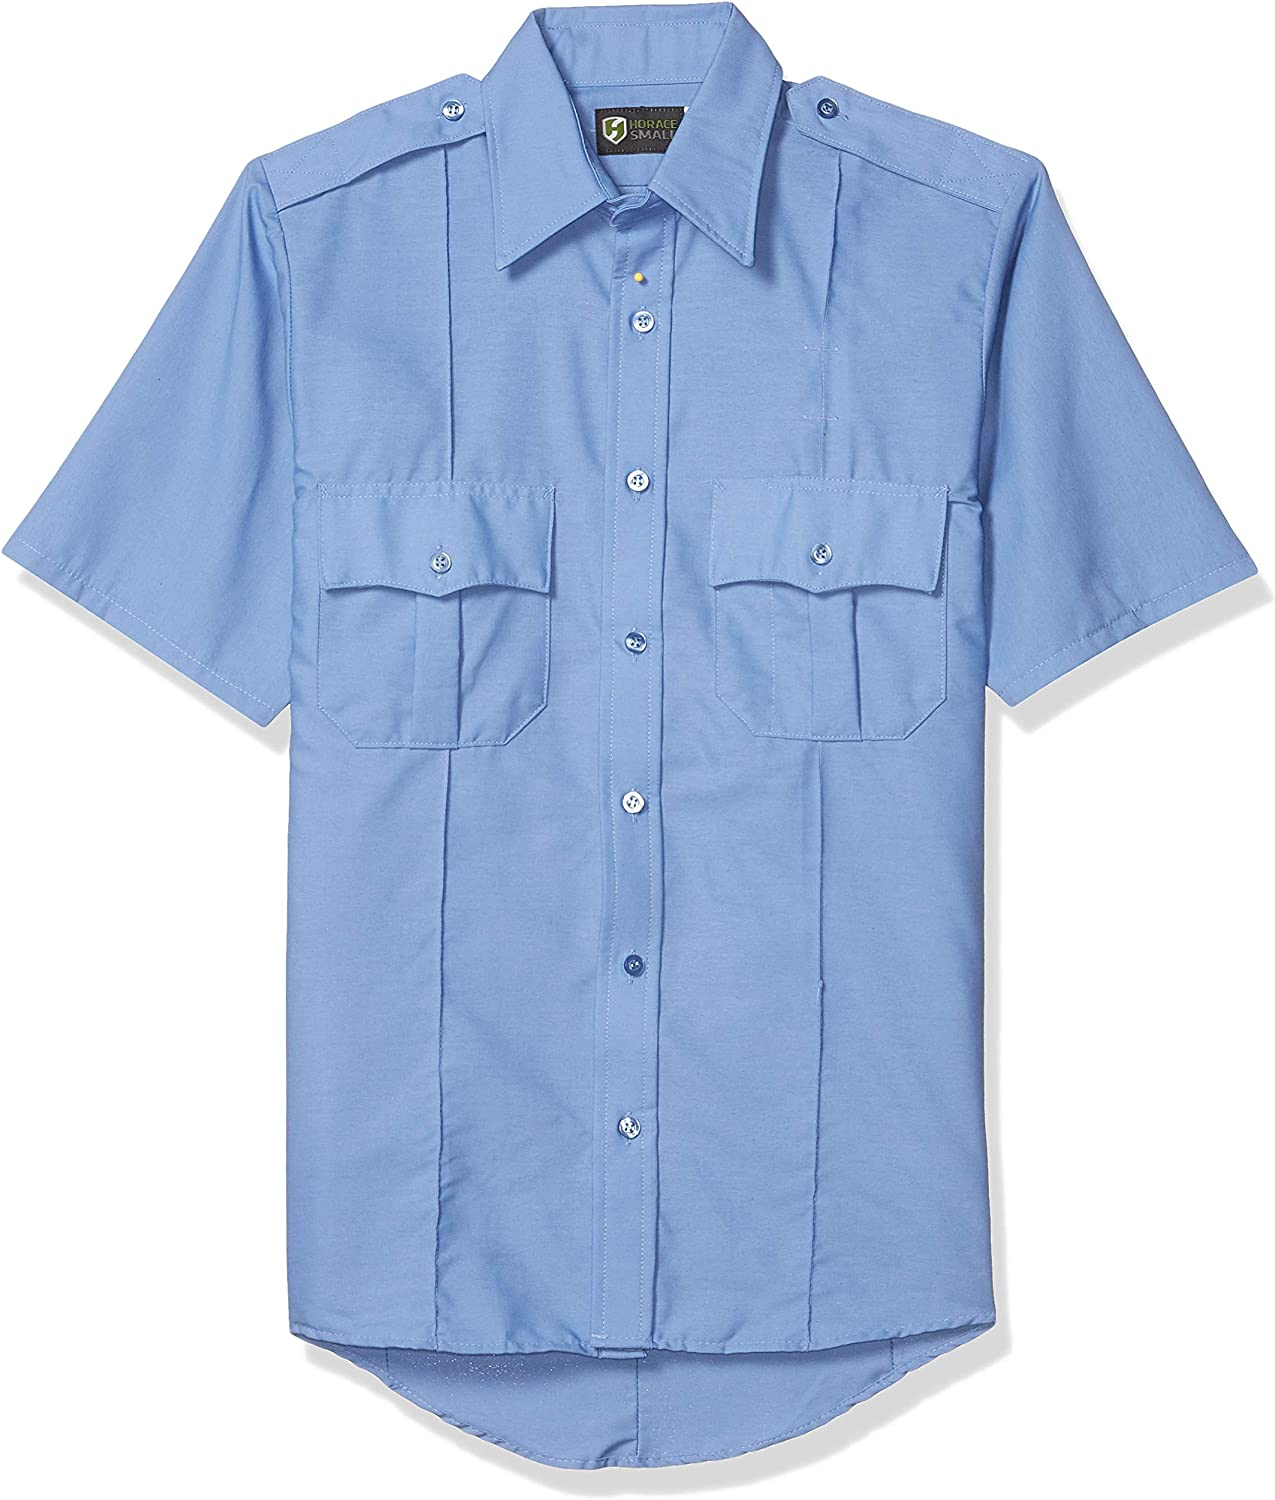 Horace Small Men's Professional Short Sleeve Security Shirt